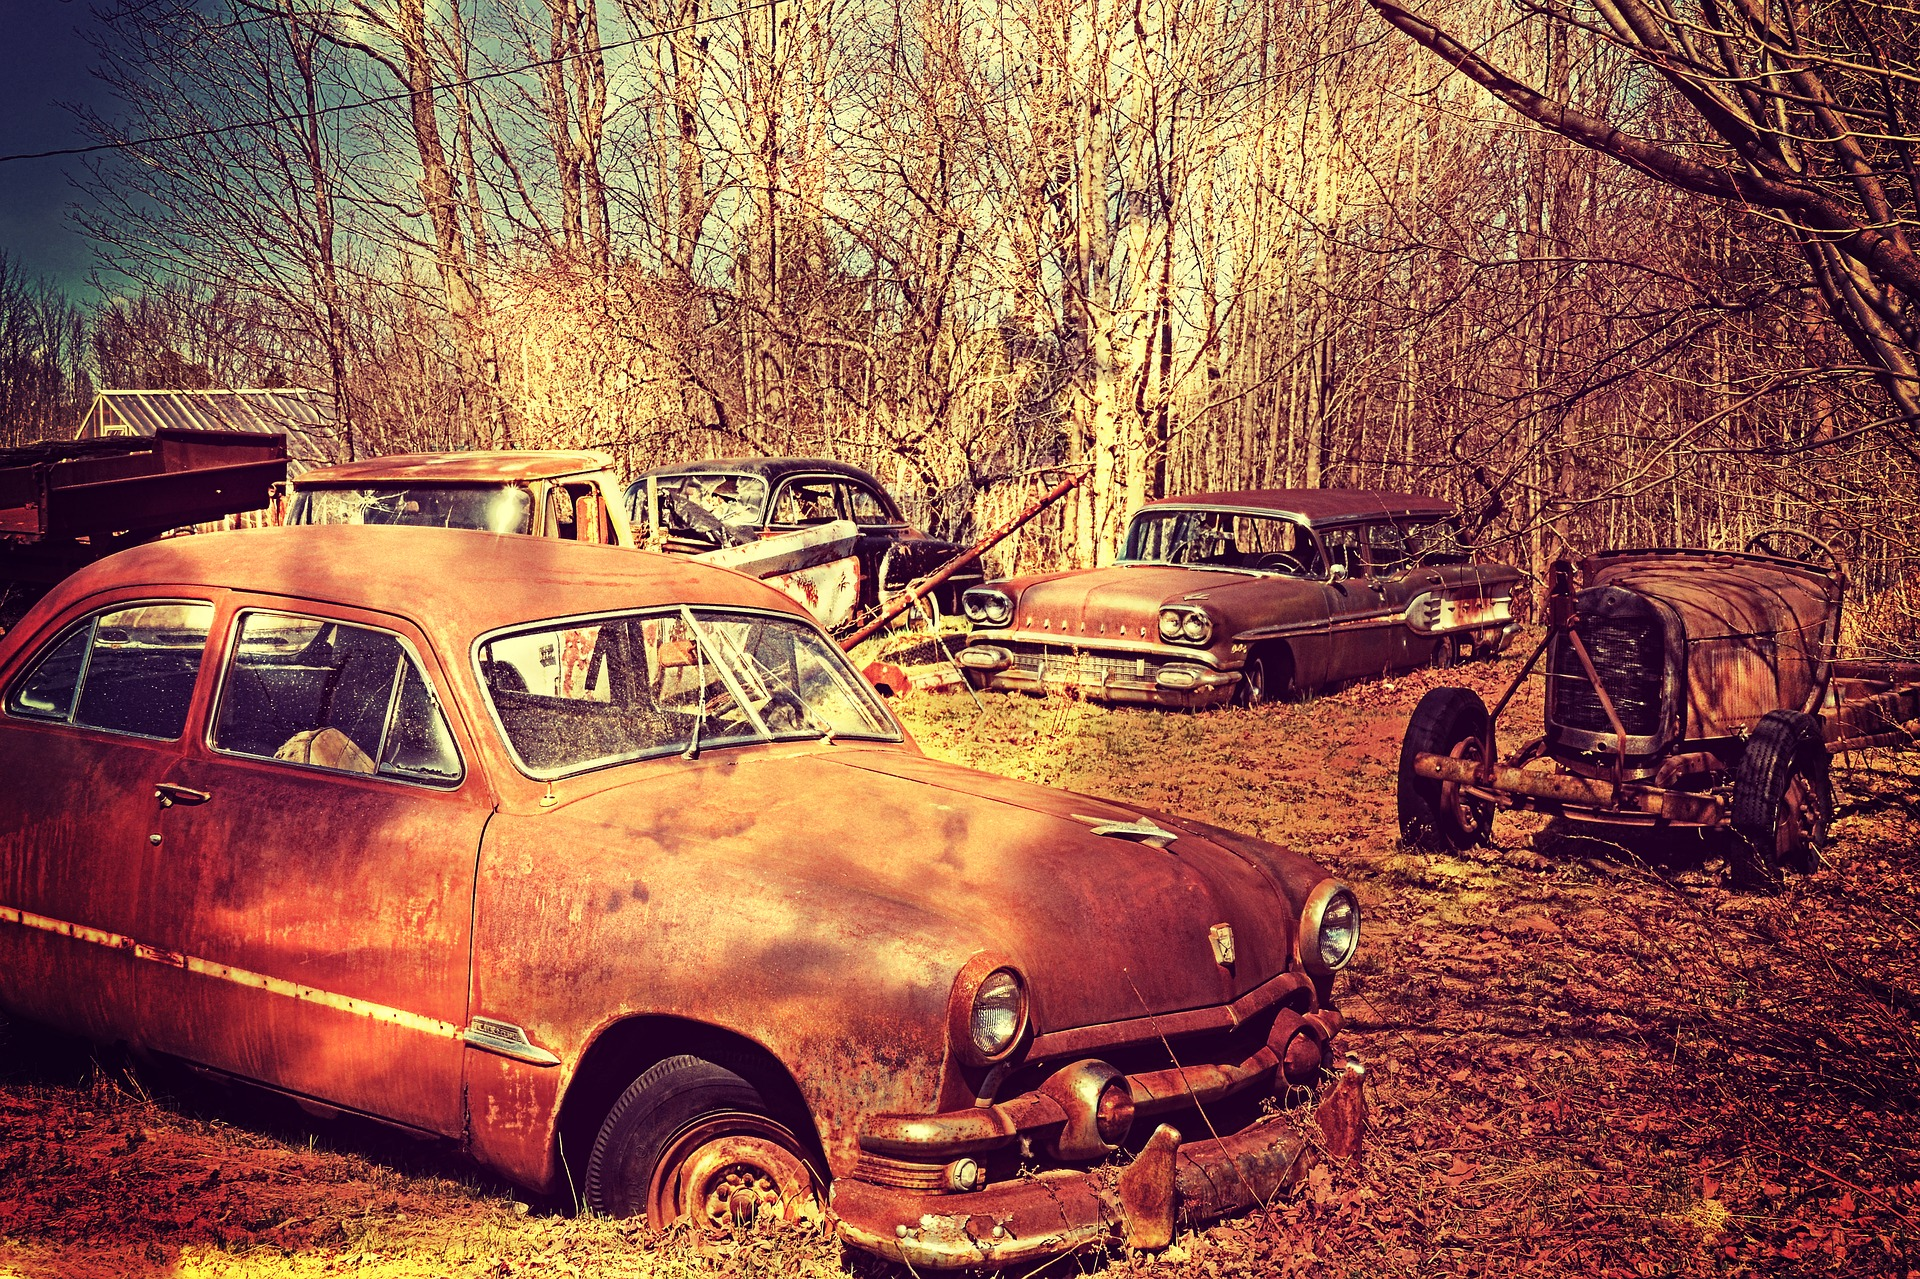 Make the Most out of Junk Car Using Sell the Cars - Salvage Yard